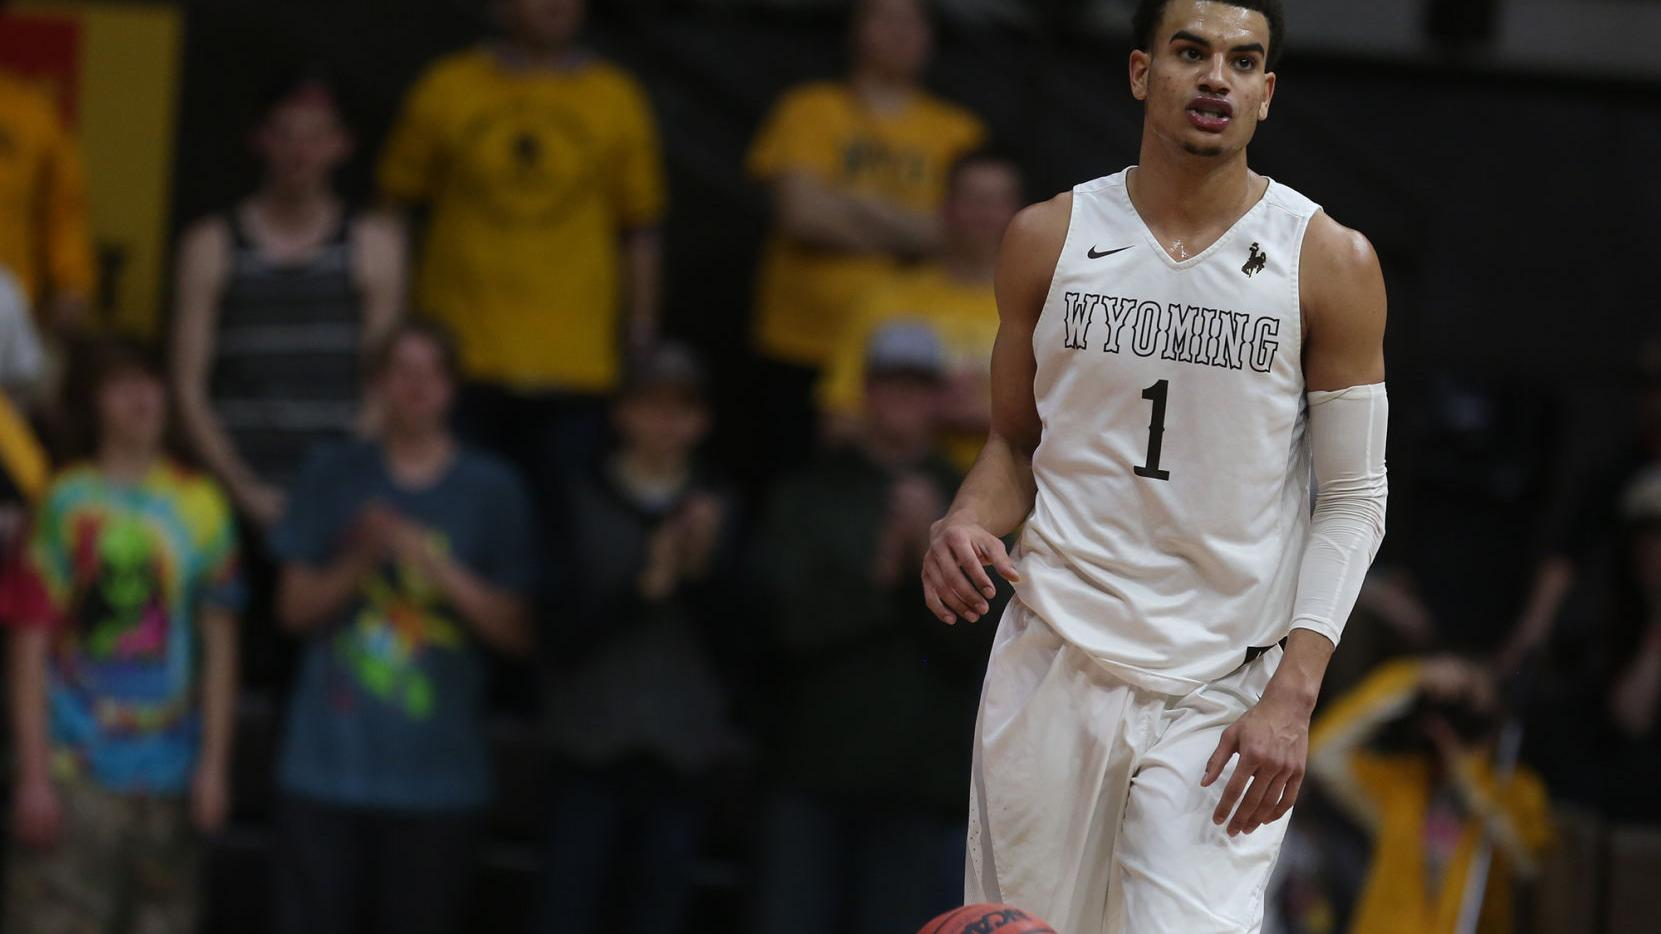 Wyoming men's basketball knocks off No. 23 Nevada in double overtime